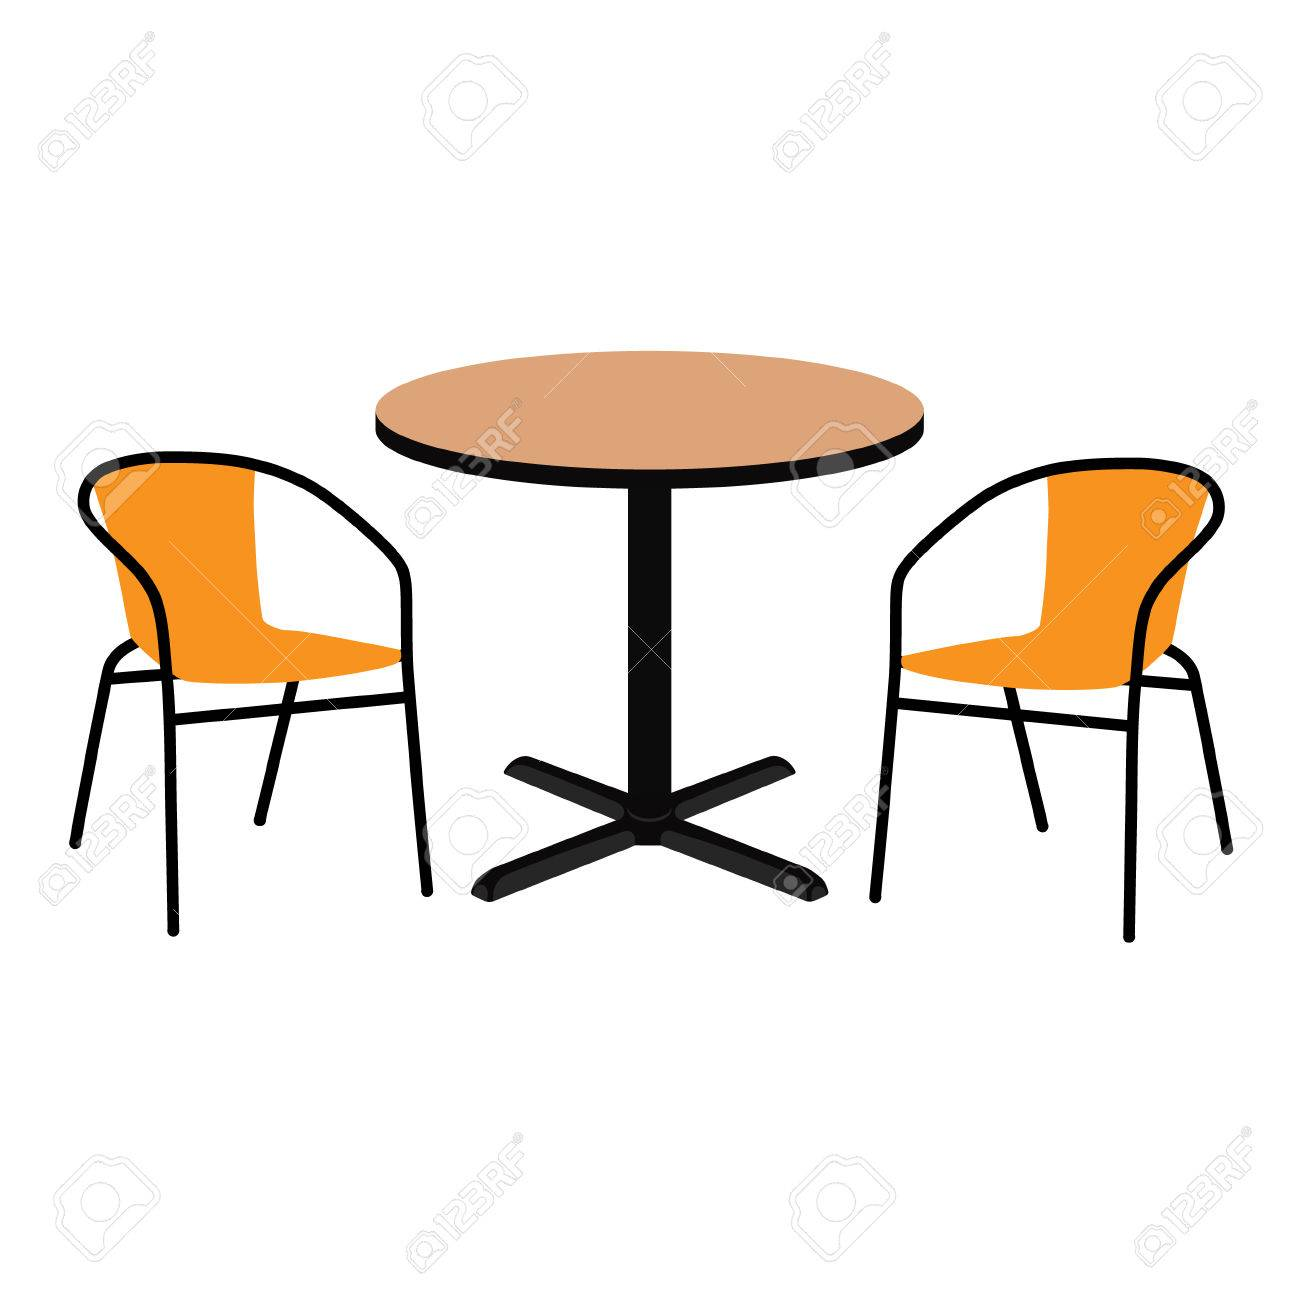 Raster Illustration Wooden Outdoor Table And Two Chairs. Round Table And  Chairs For Cafe,